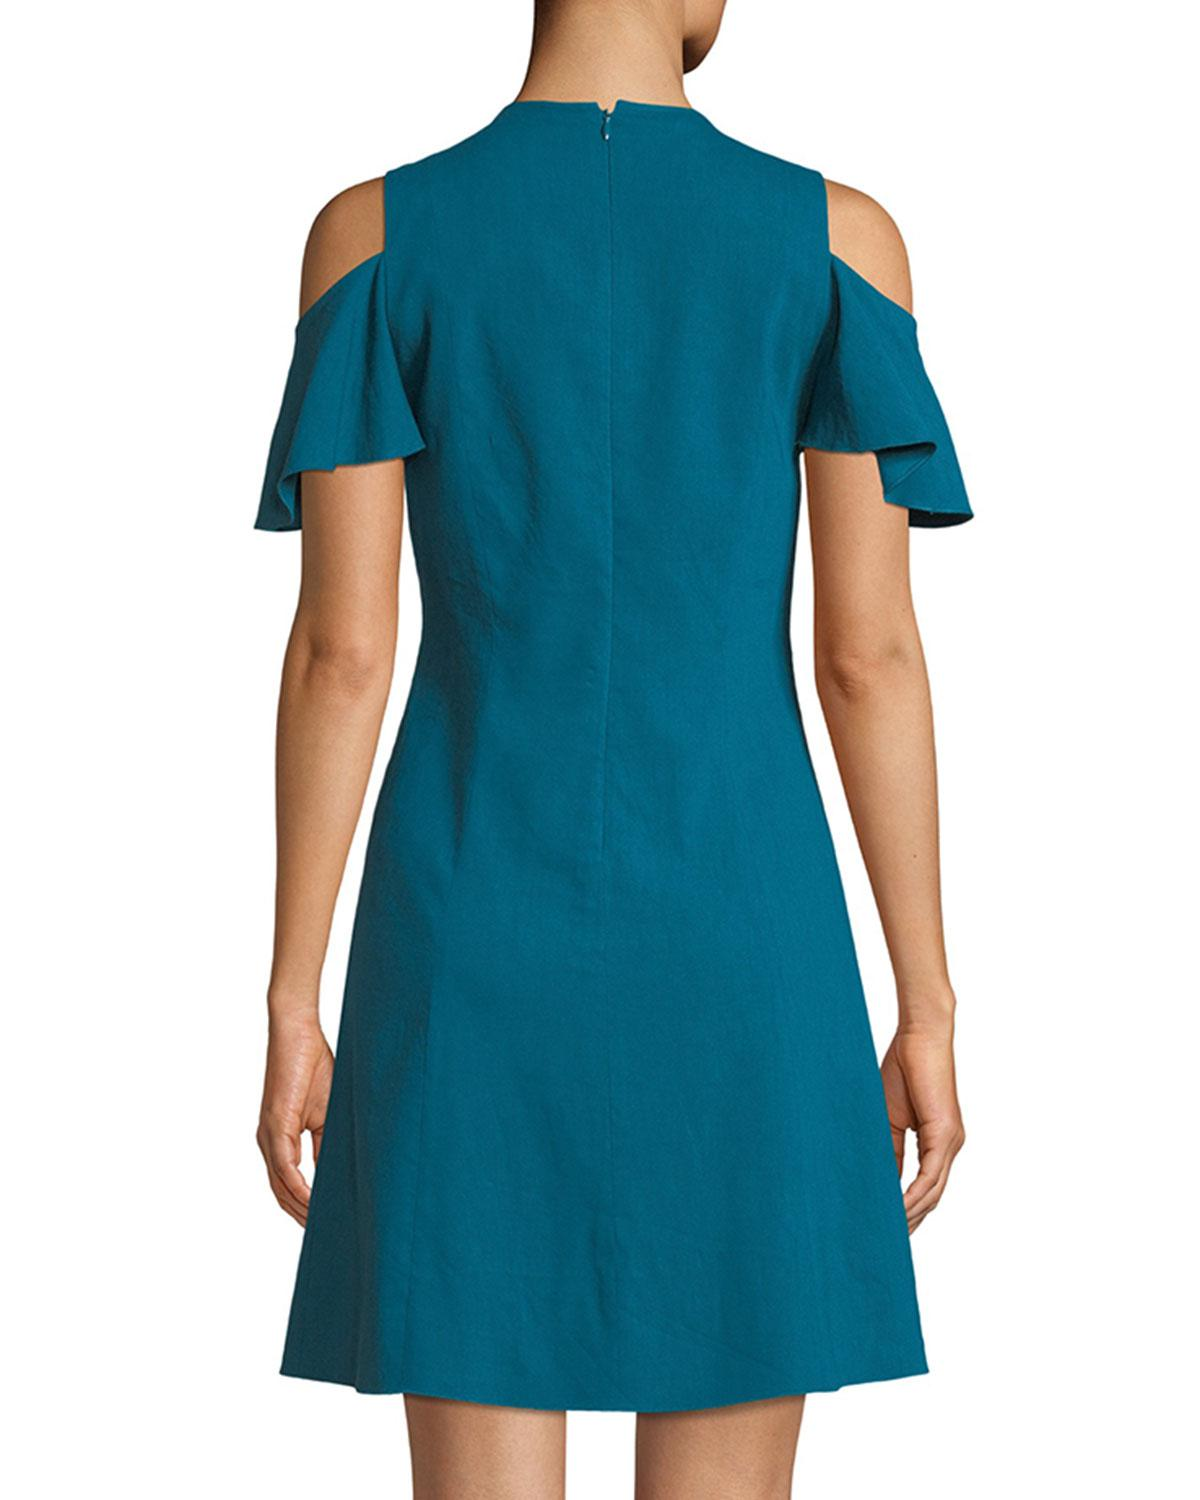 ebf8874bd9 Lyst - Elie Tahari Woman Raylan Cold-shoulder Cutout Linen-blend Mini Dress  Teal in Blue - Save 67%